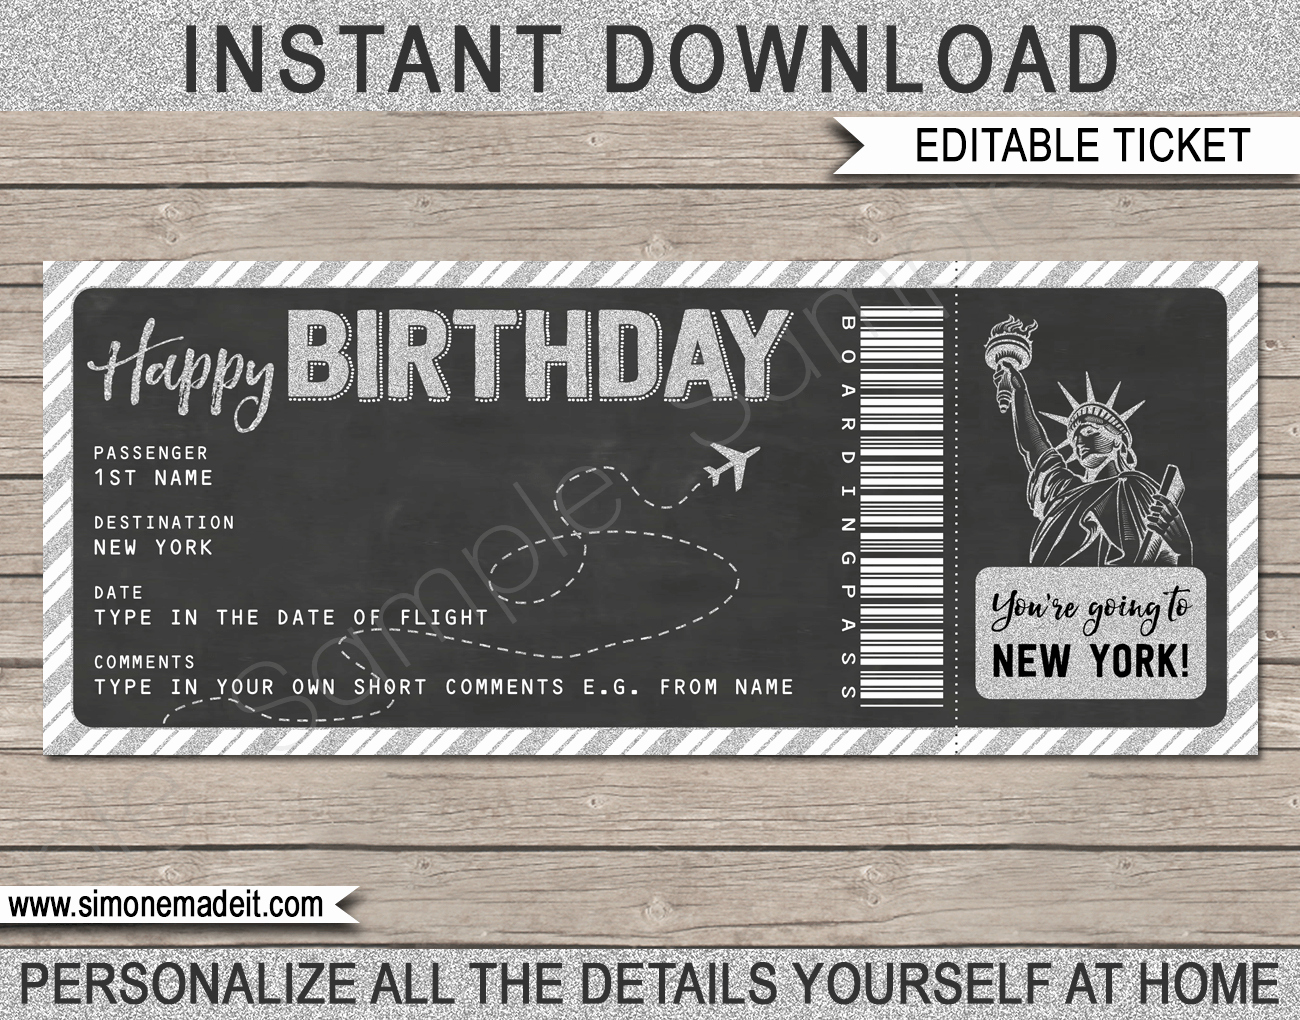 Airline Ticket Gift Certificate Template Inspirational Surprise Trip to New York Plane Ticket